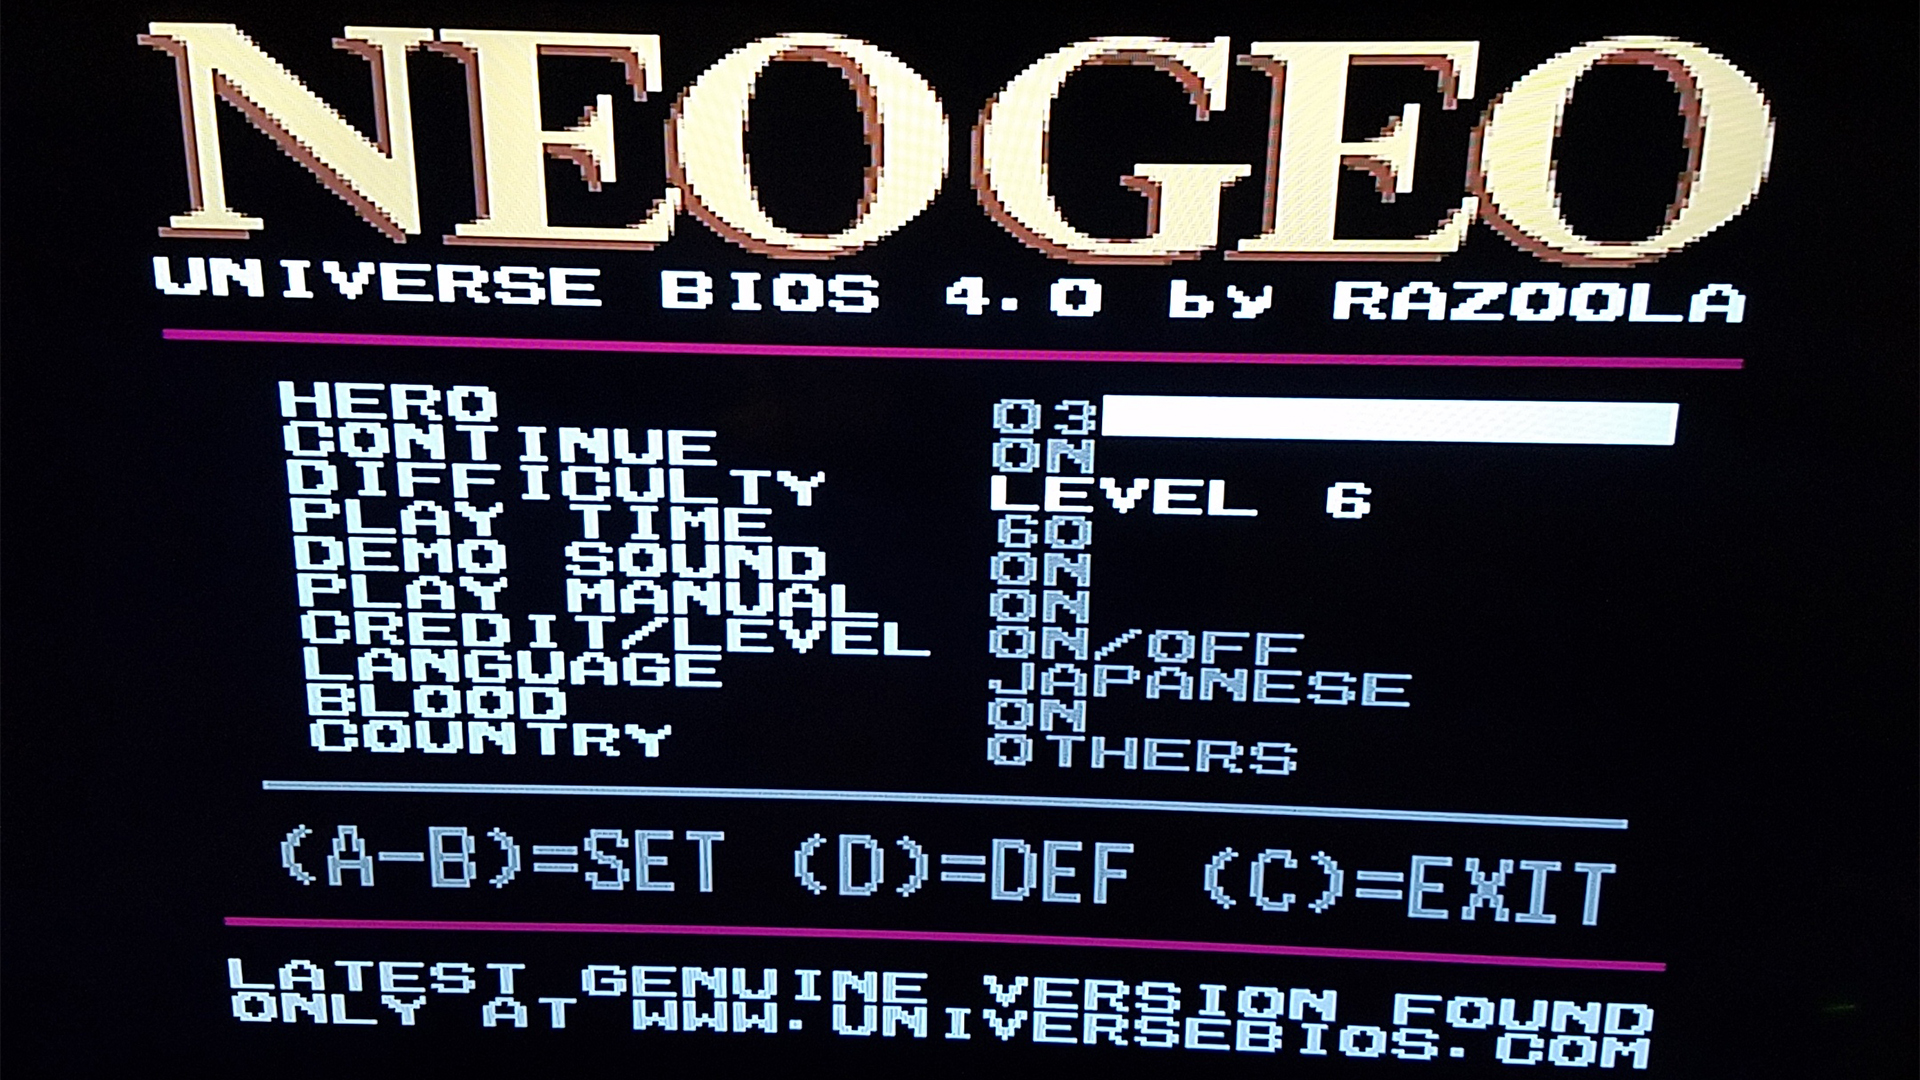 Neo Geo UniBIOS v4.0 Free For Personal Use